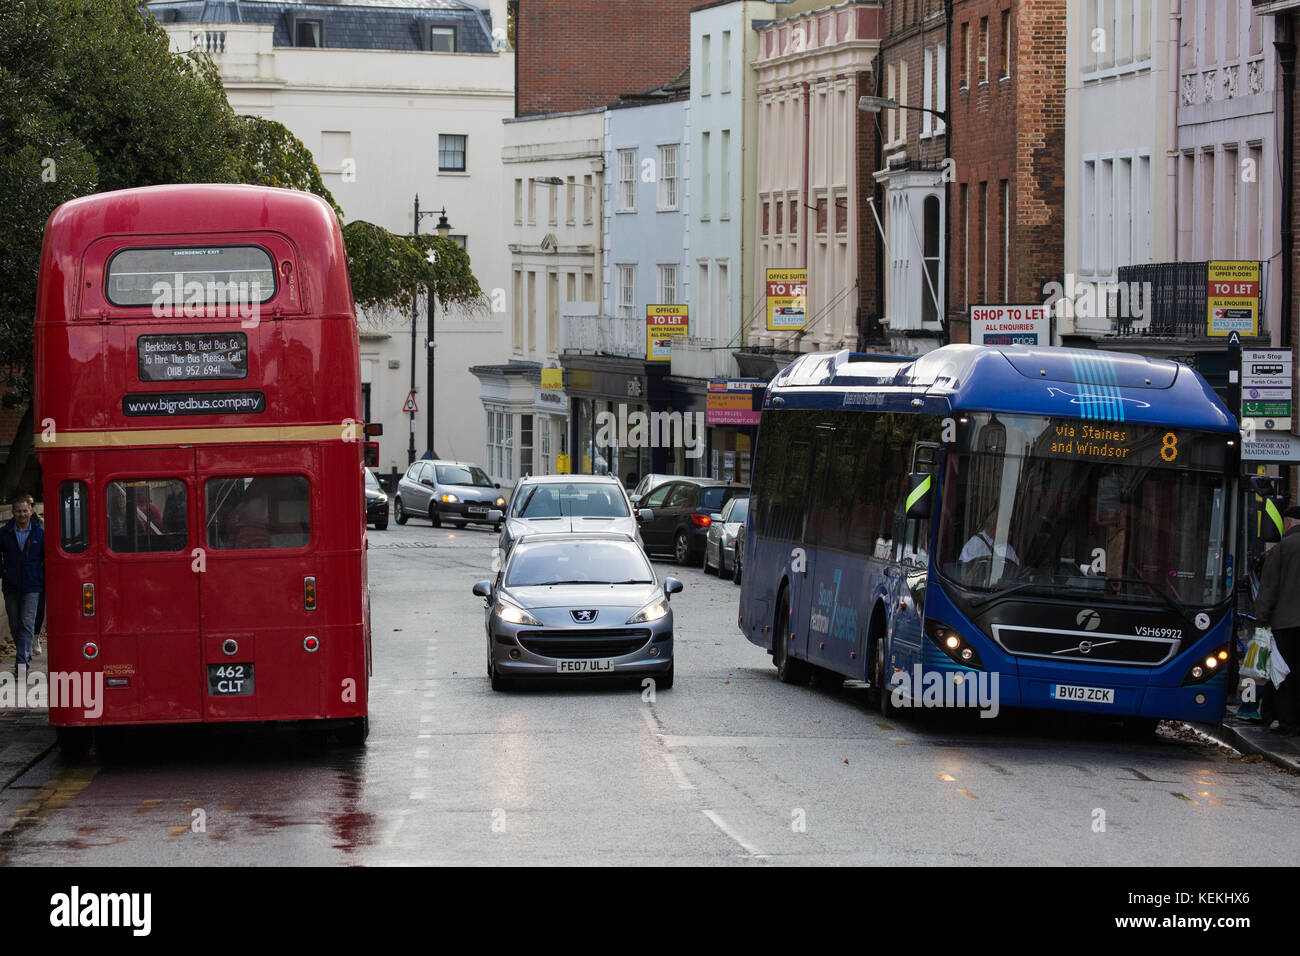 Windsor, UK. 21st October, 2017. An old double-decker and a contemporary single-decker bus in Windsor High Street. - Stock Image